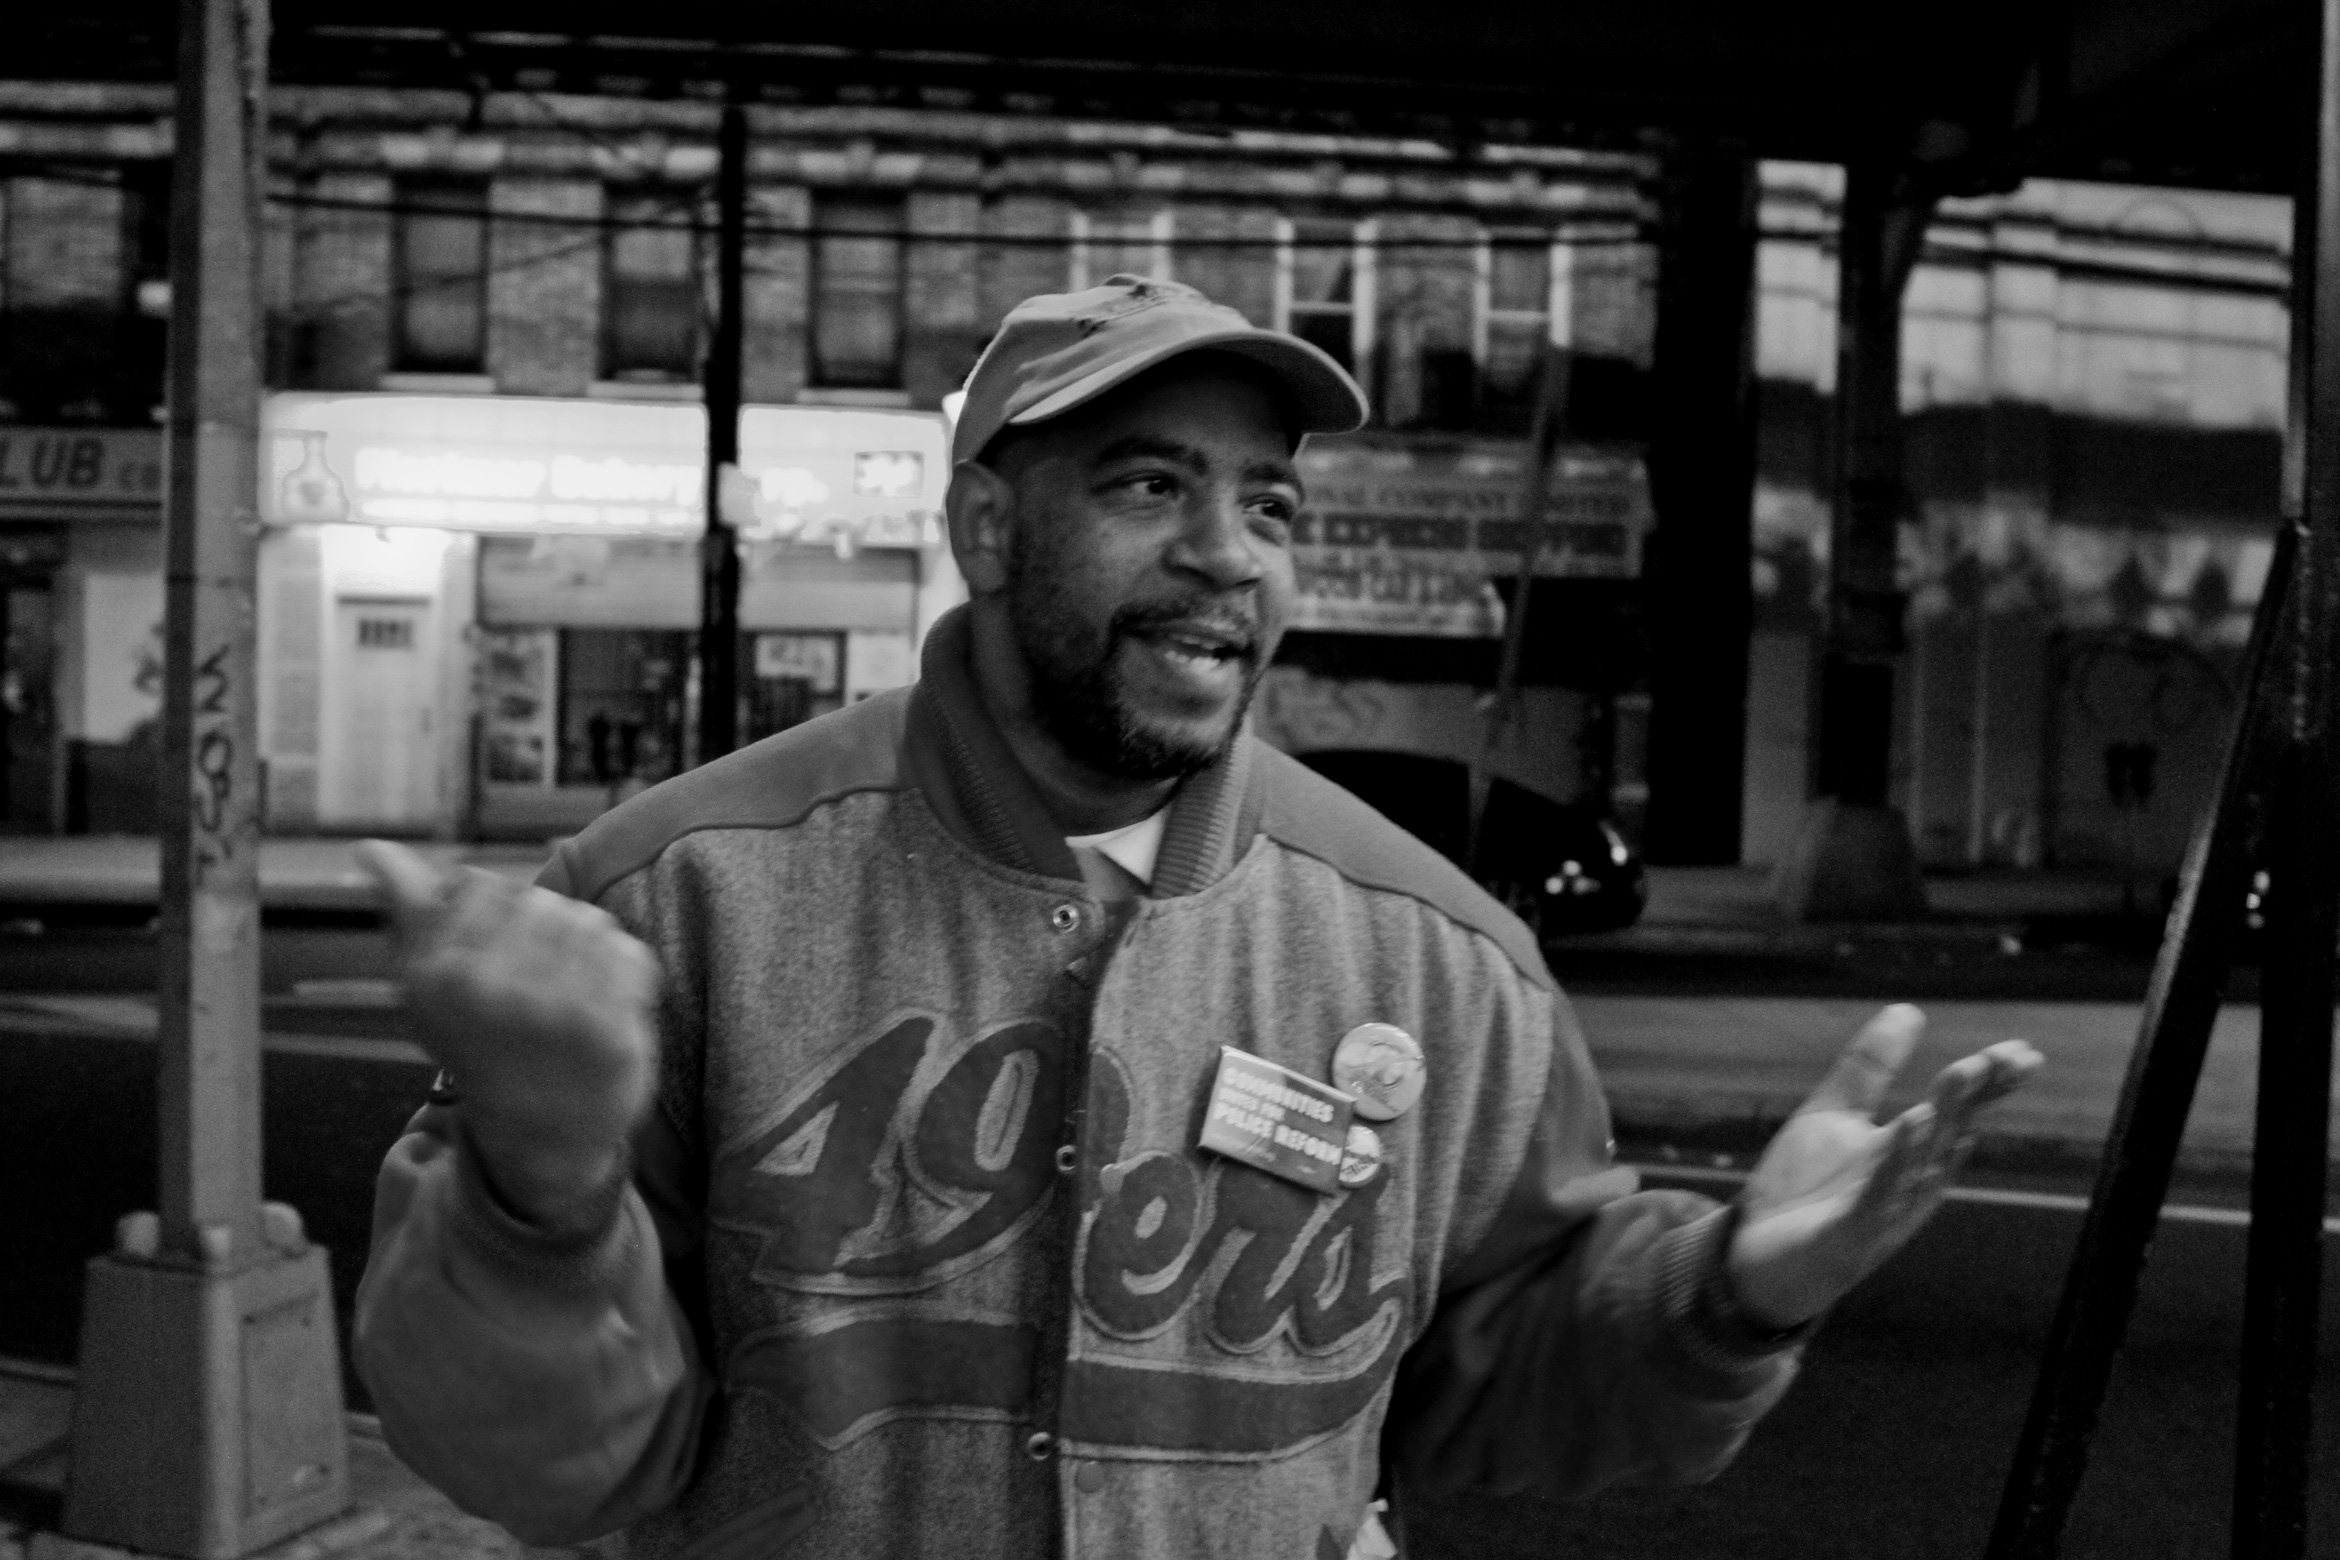 street-poet-new-york-nyc-times-up